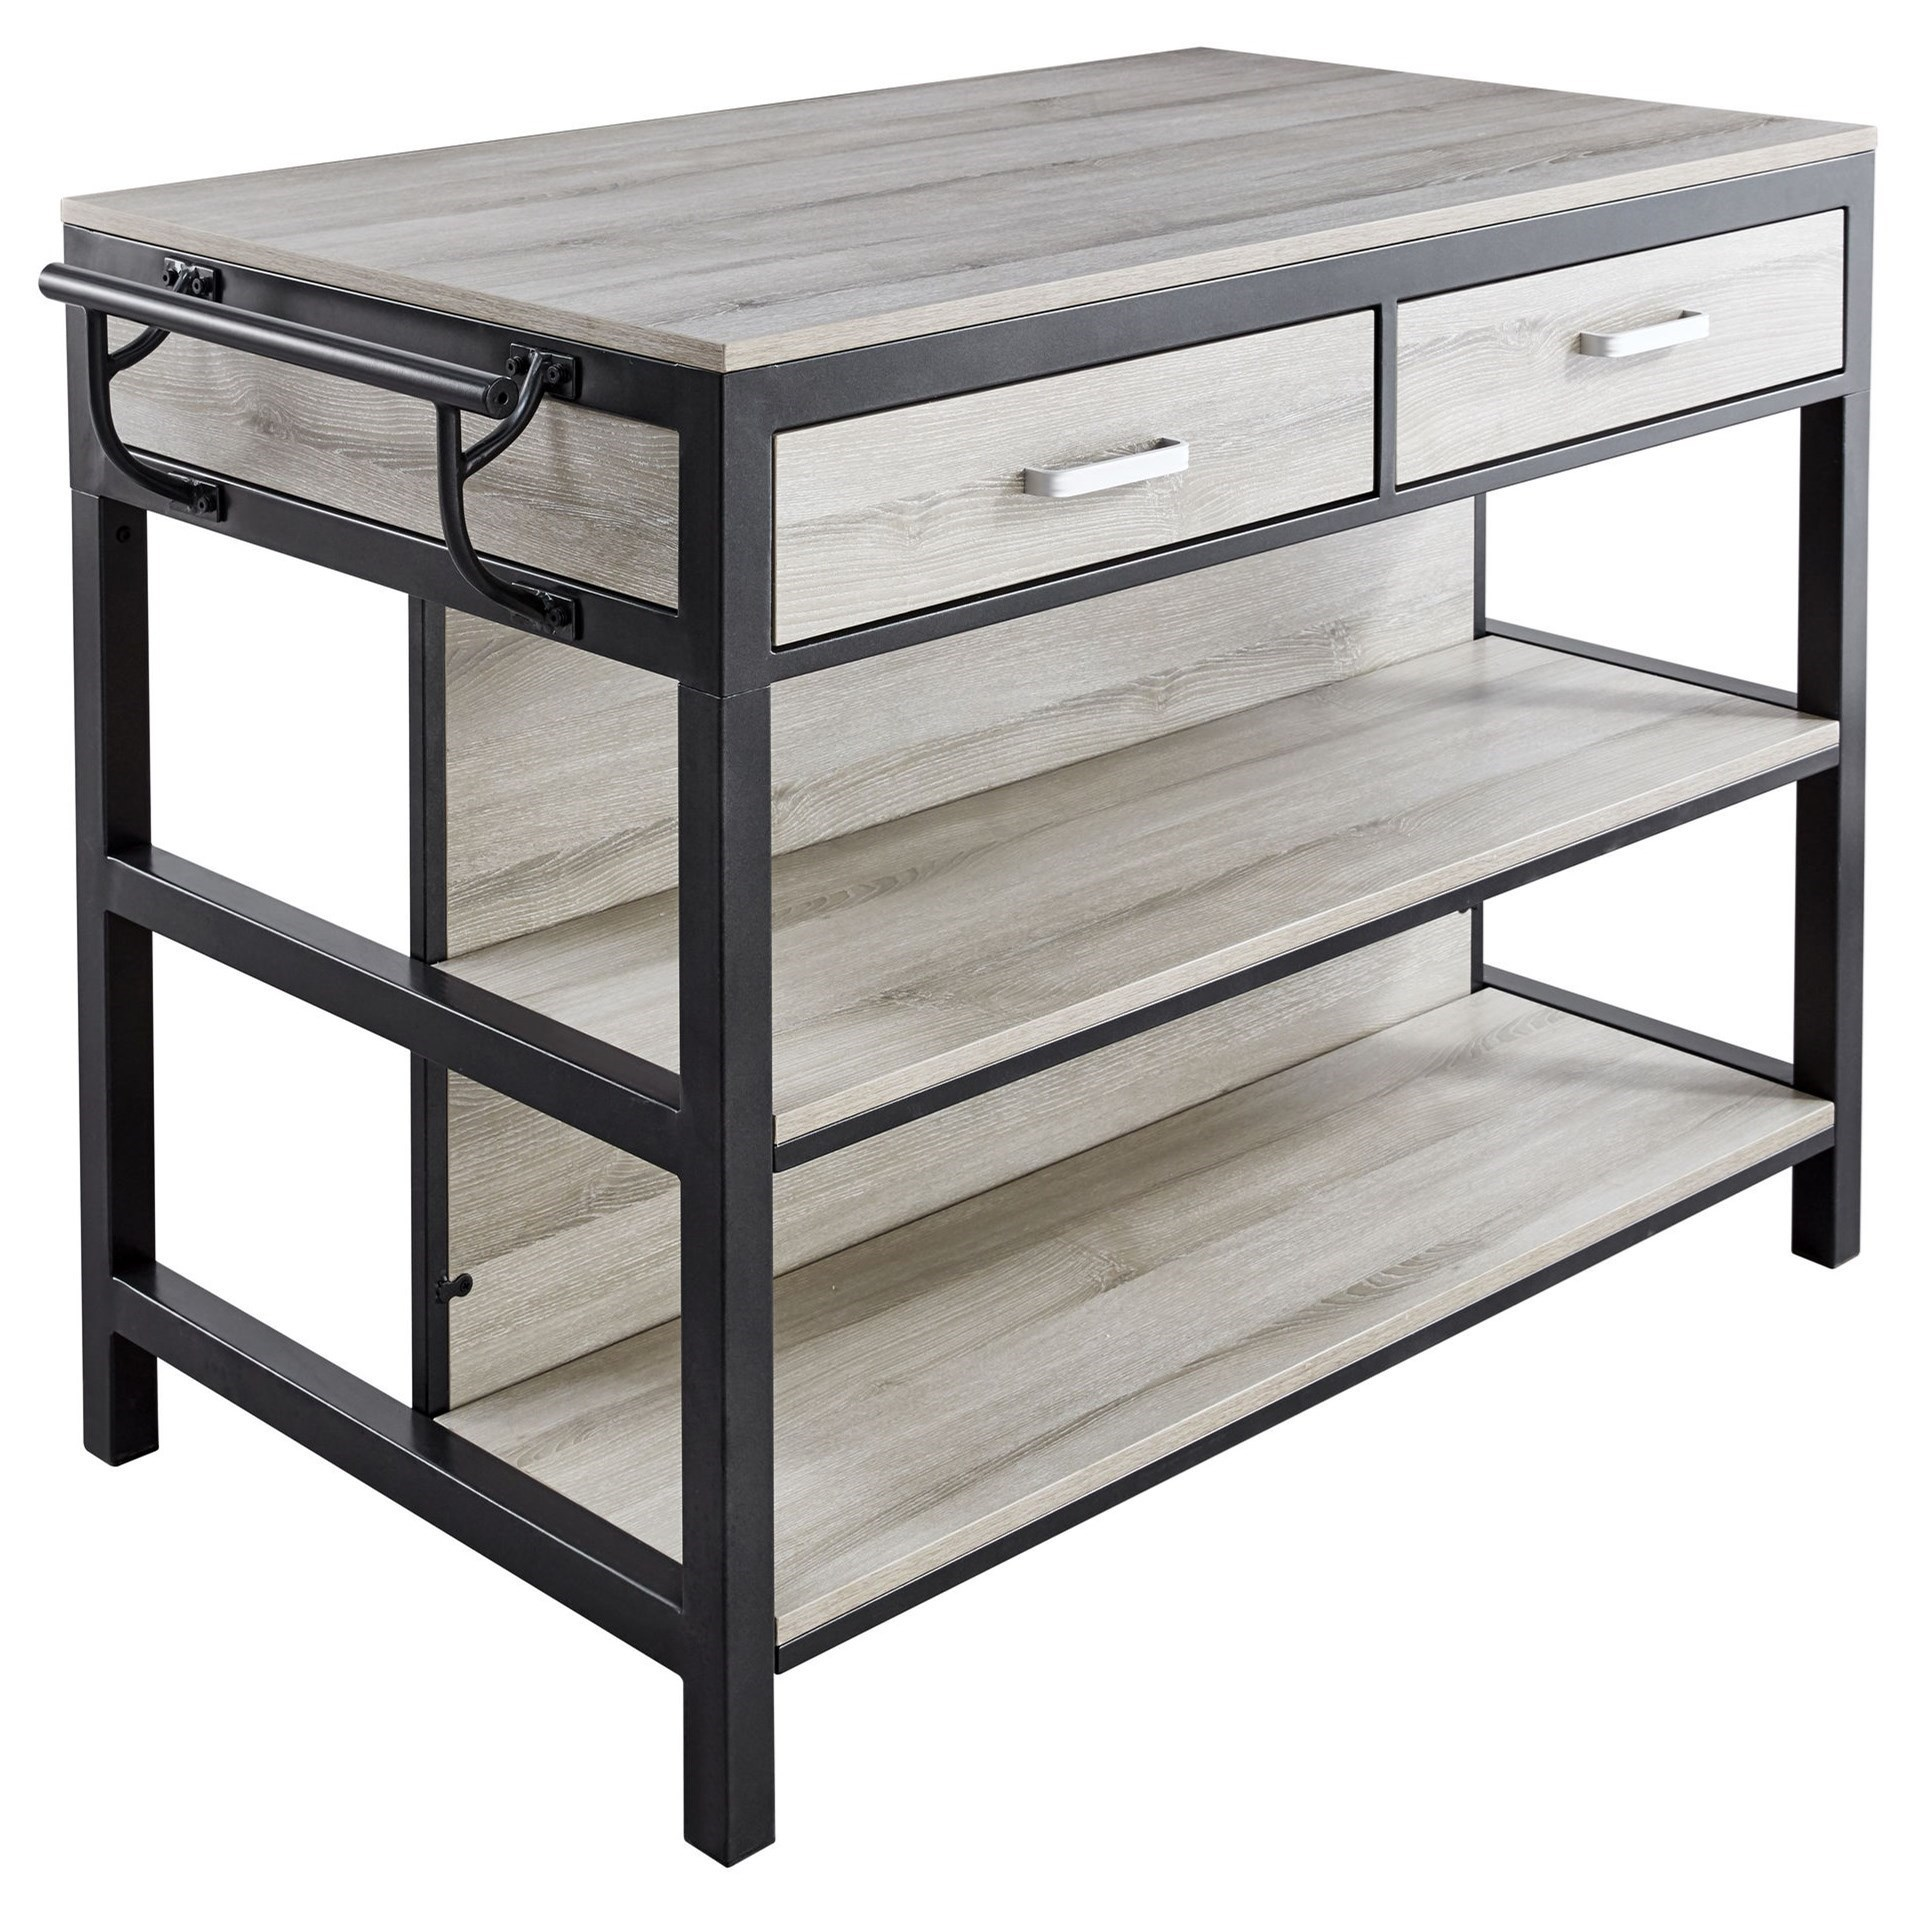 Carson Counter Height Kitchen Table by Steve Silver at Standard Furniture